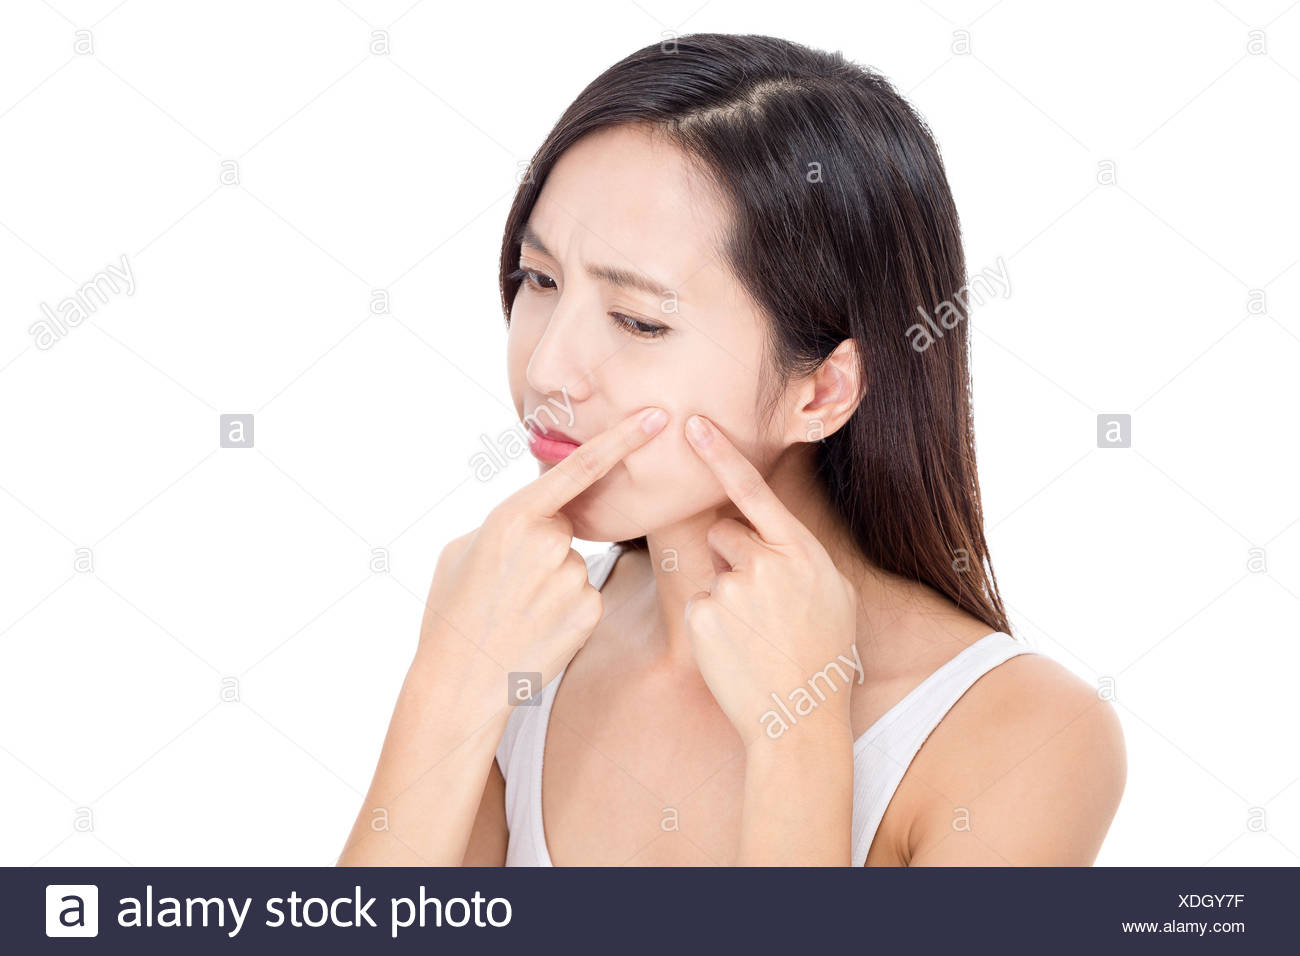 Young woman Squeezing pimple - Stock Image